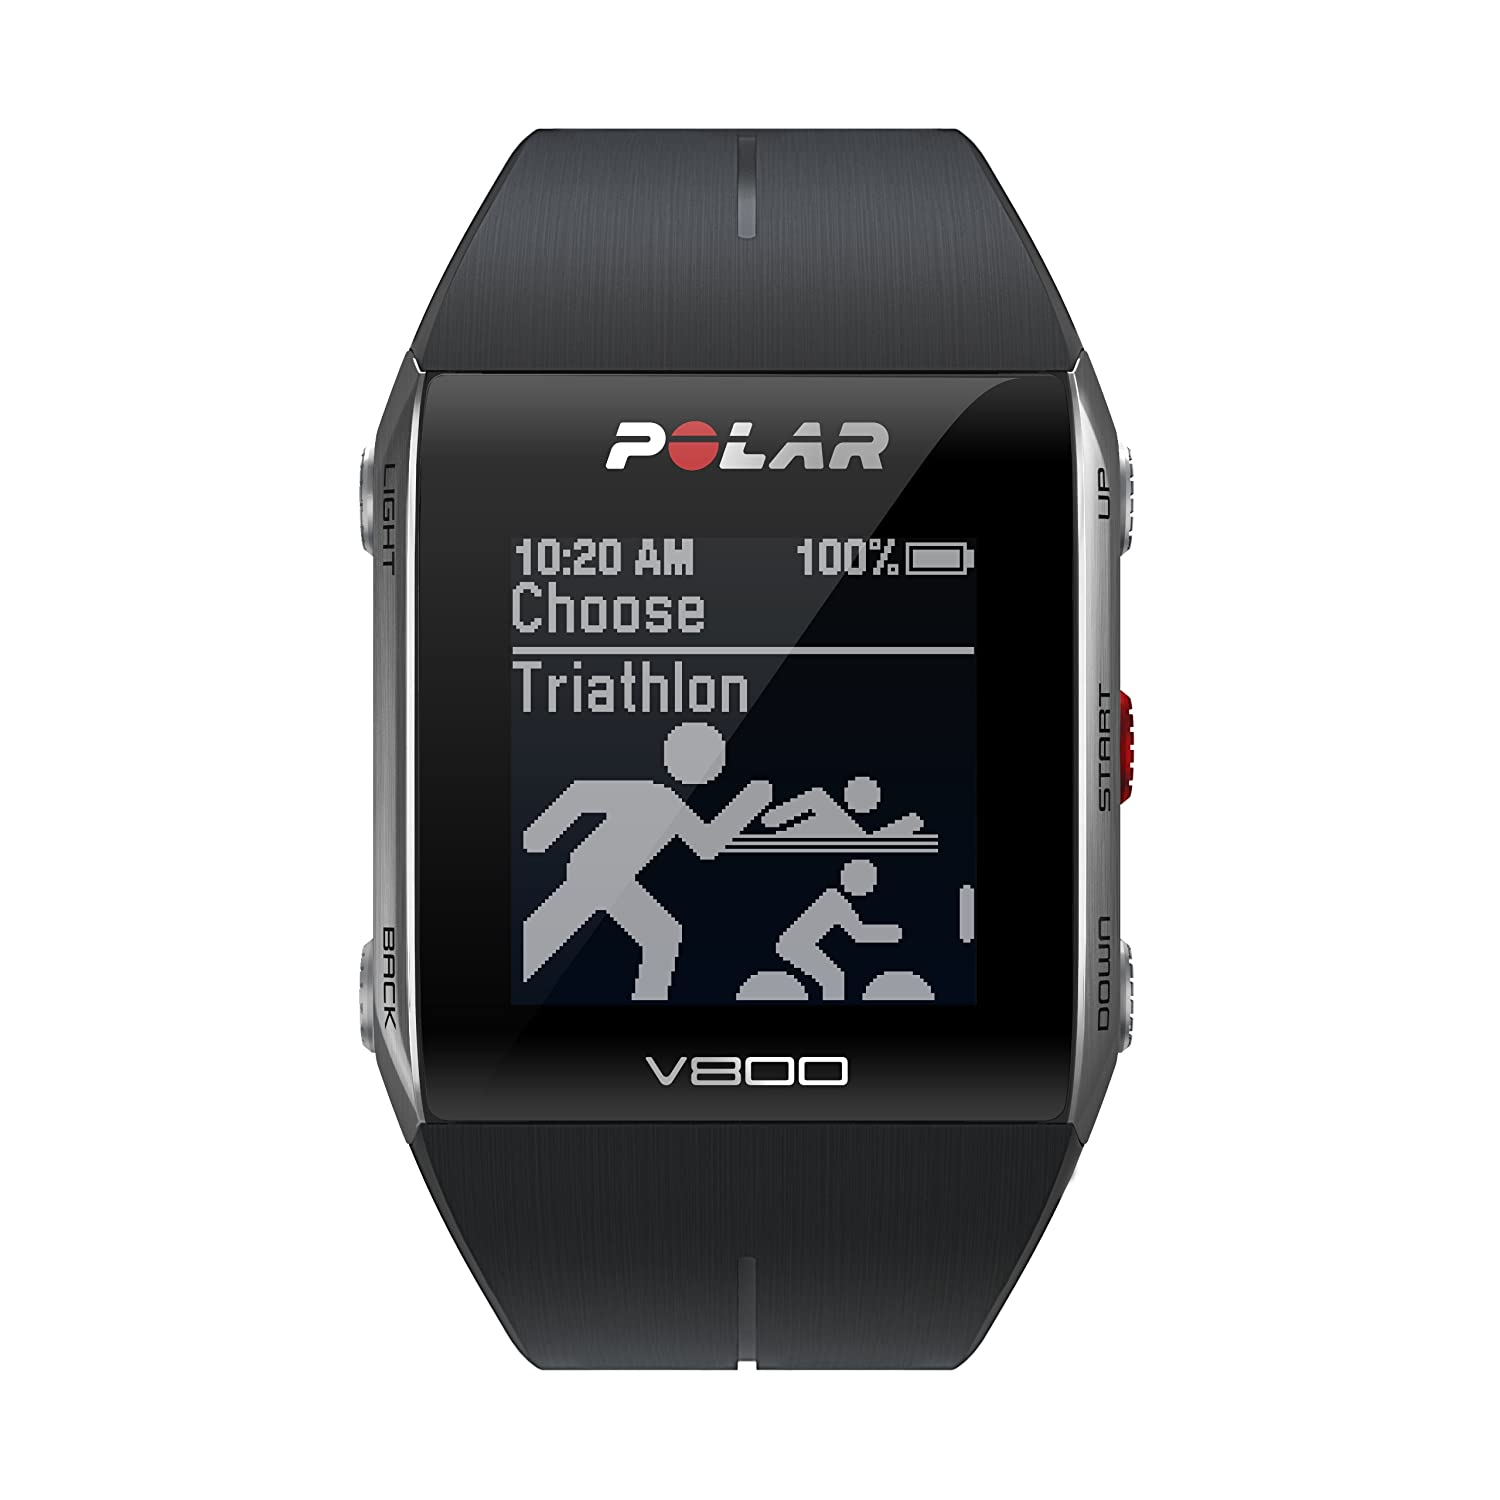 Amazon.com : Polar V800 GPS Sports Watch with Heart Rate ...